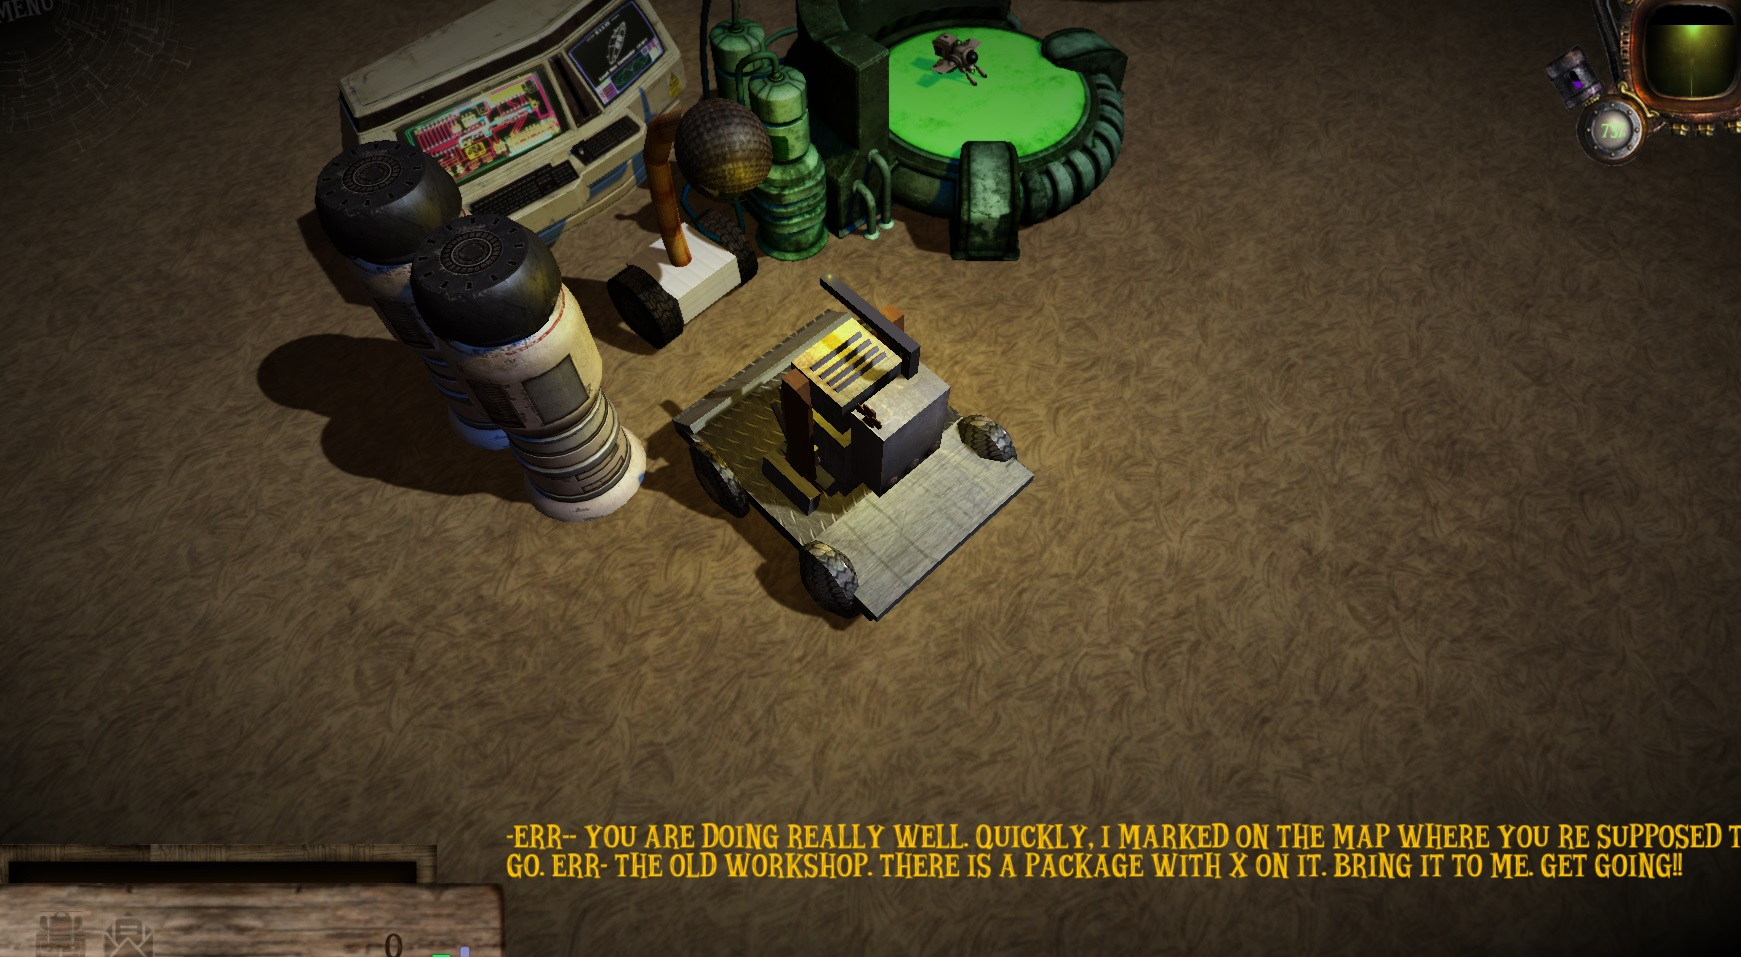 com.steam.763210-screenshot